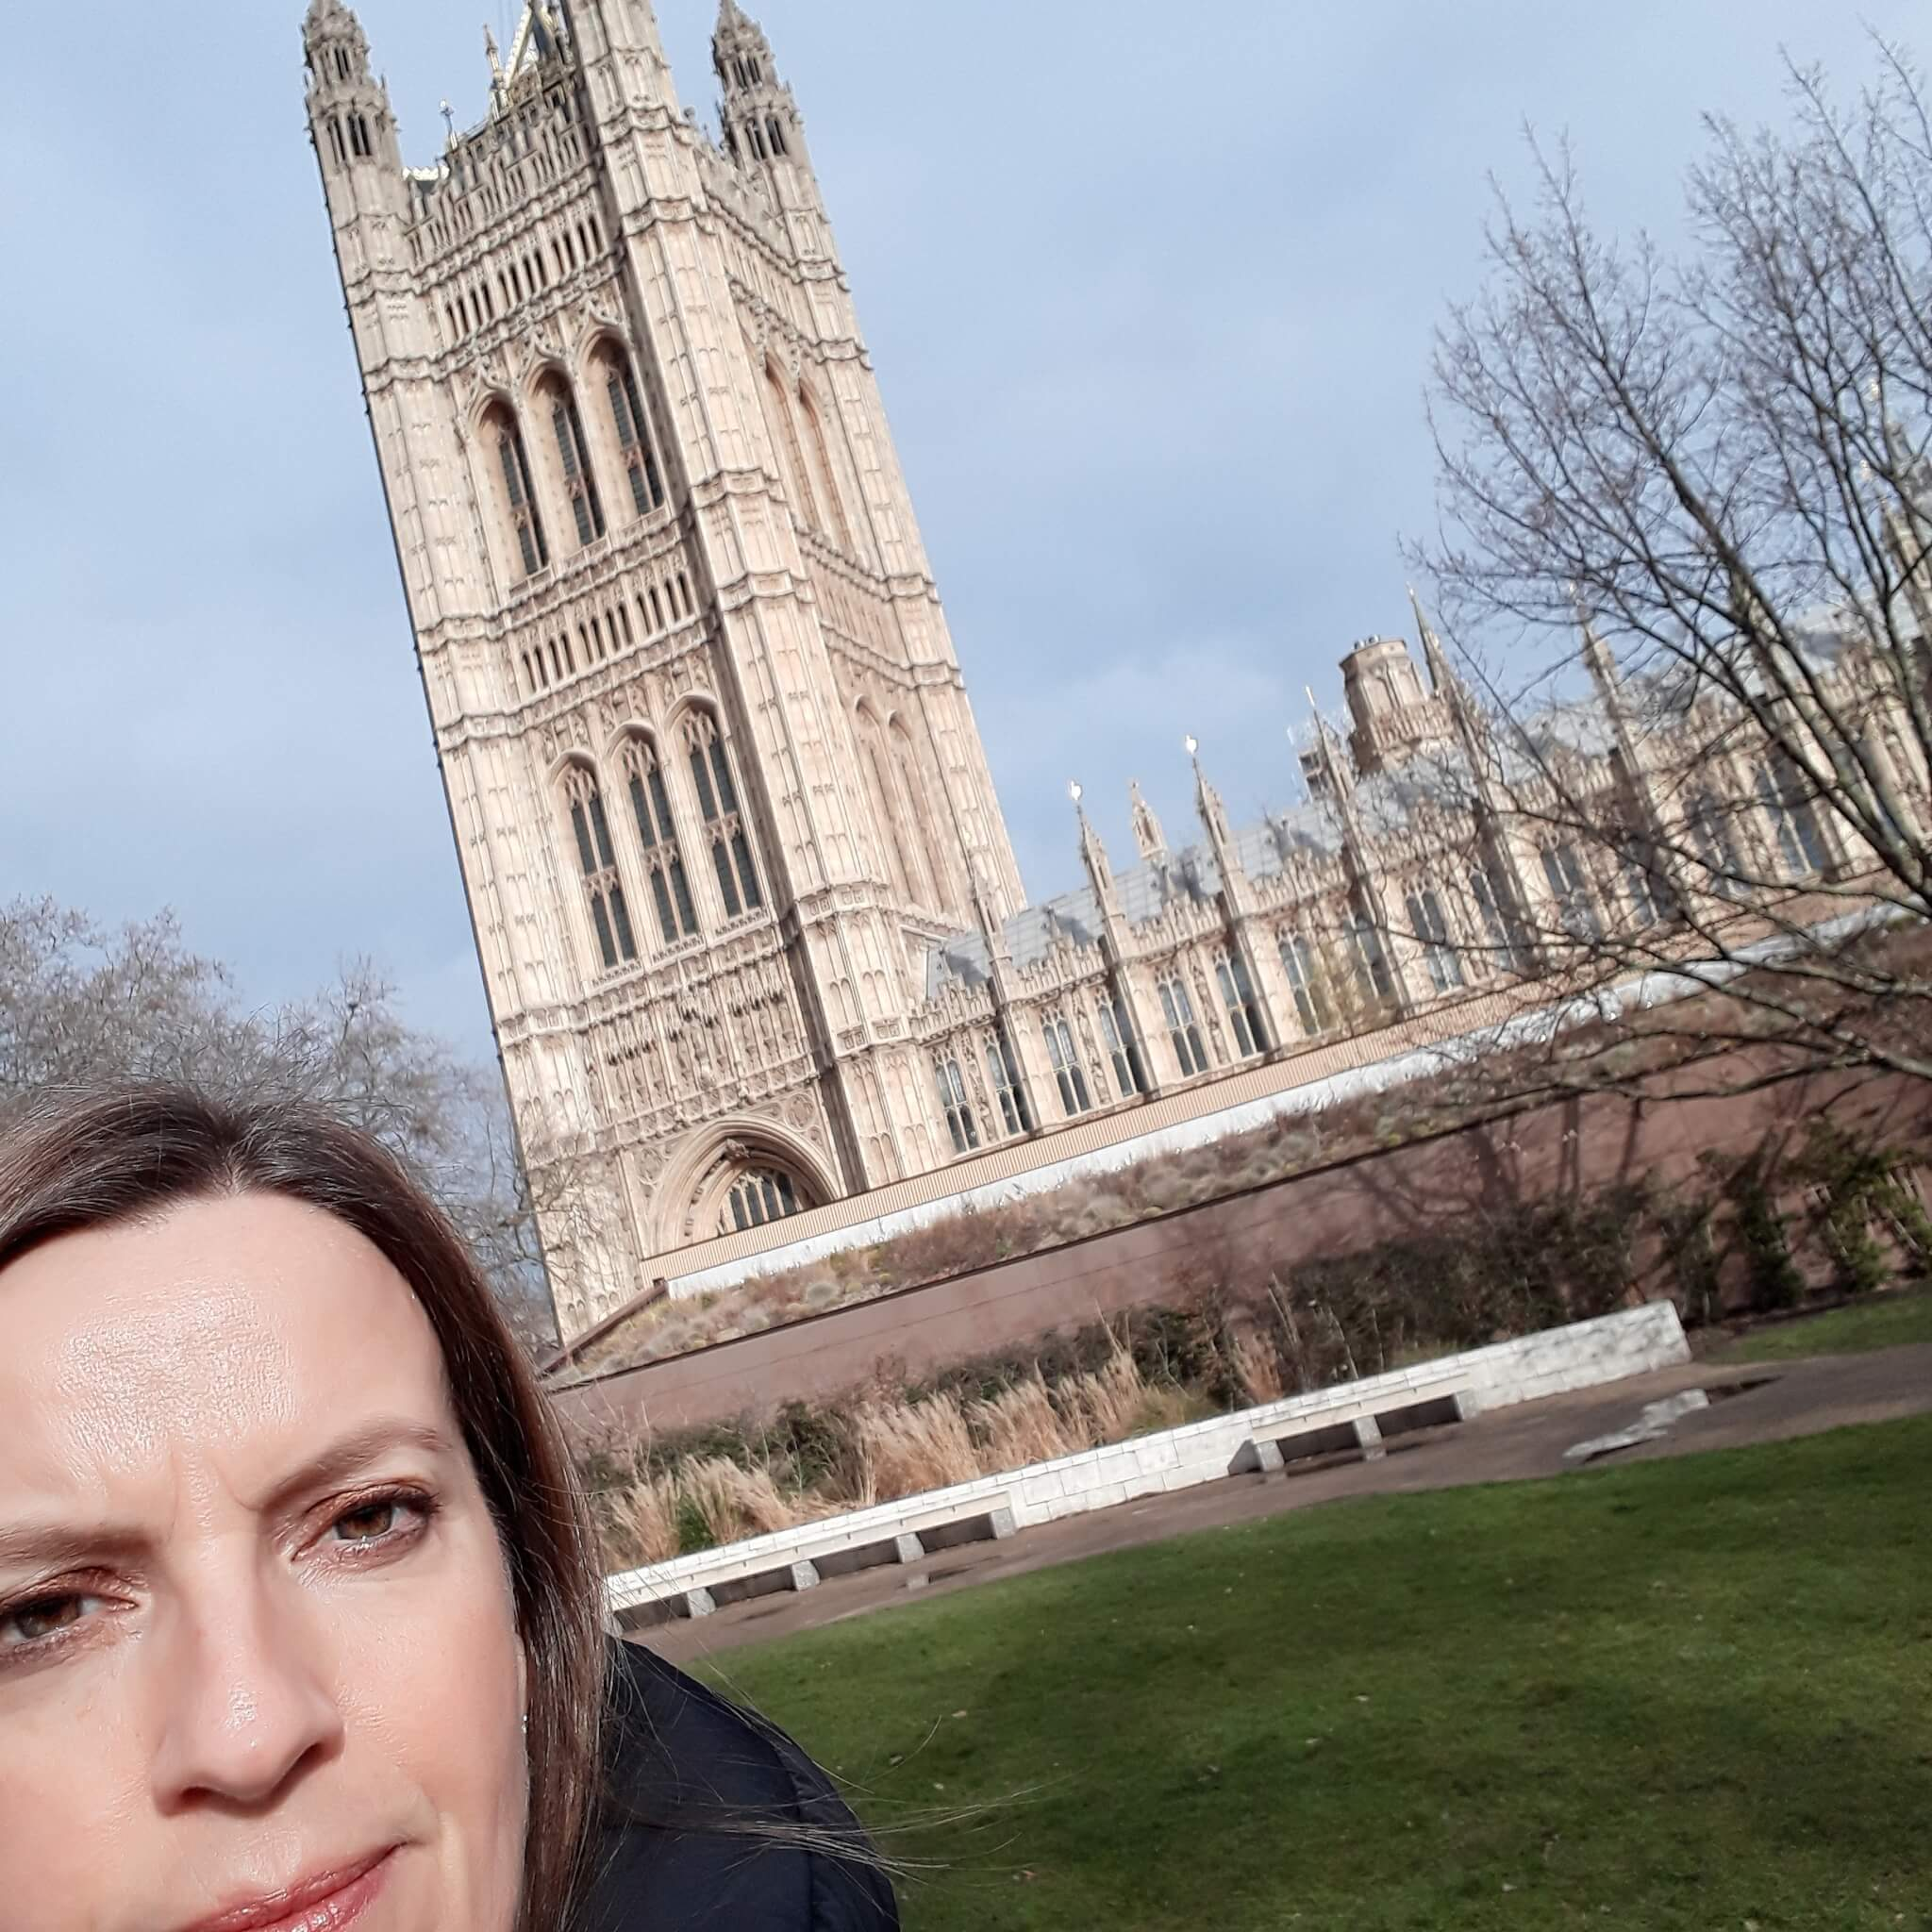 Sarah Mumford at the Houses of Parliament